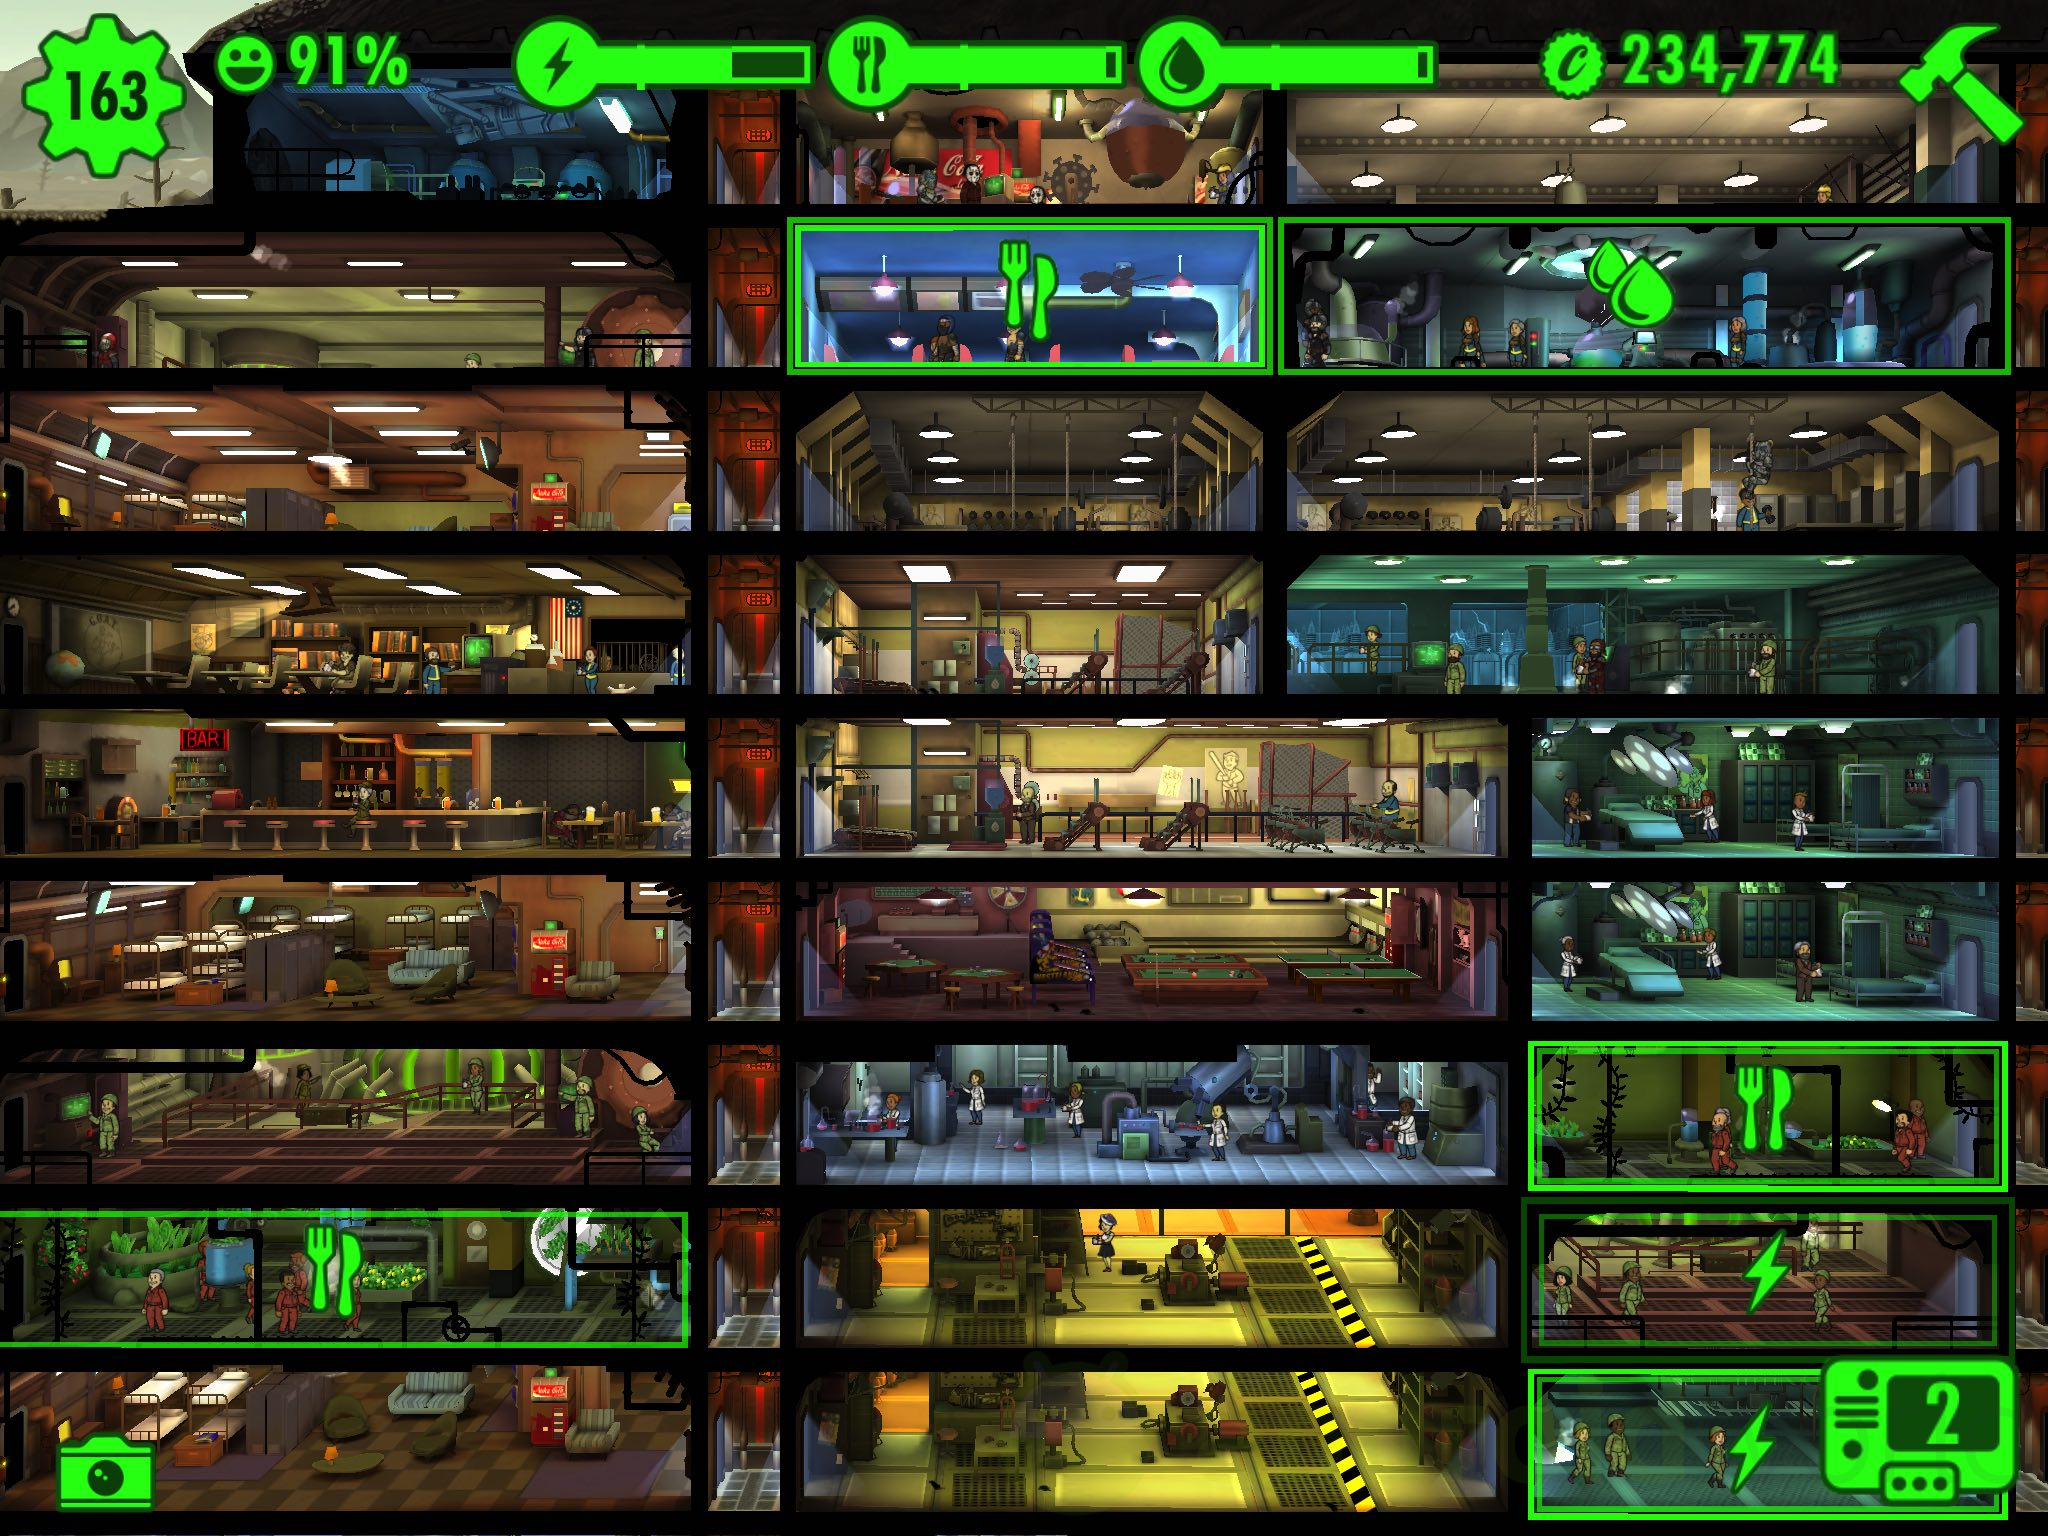 Fallout shelter playground - 1